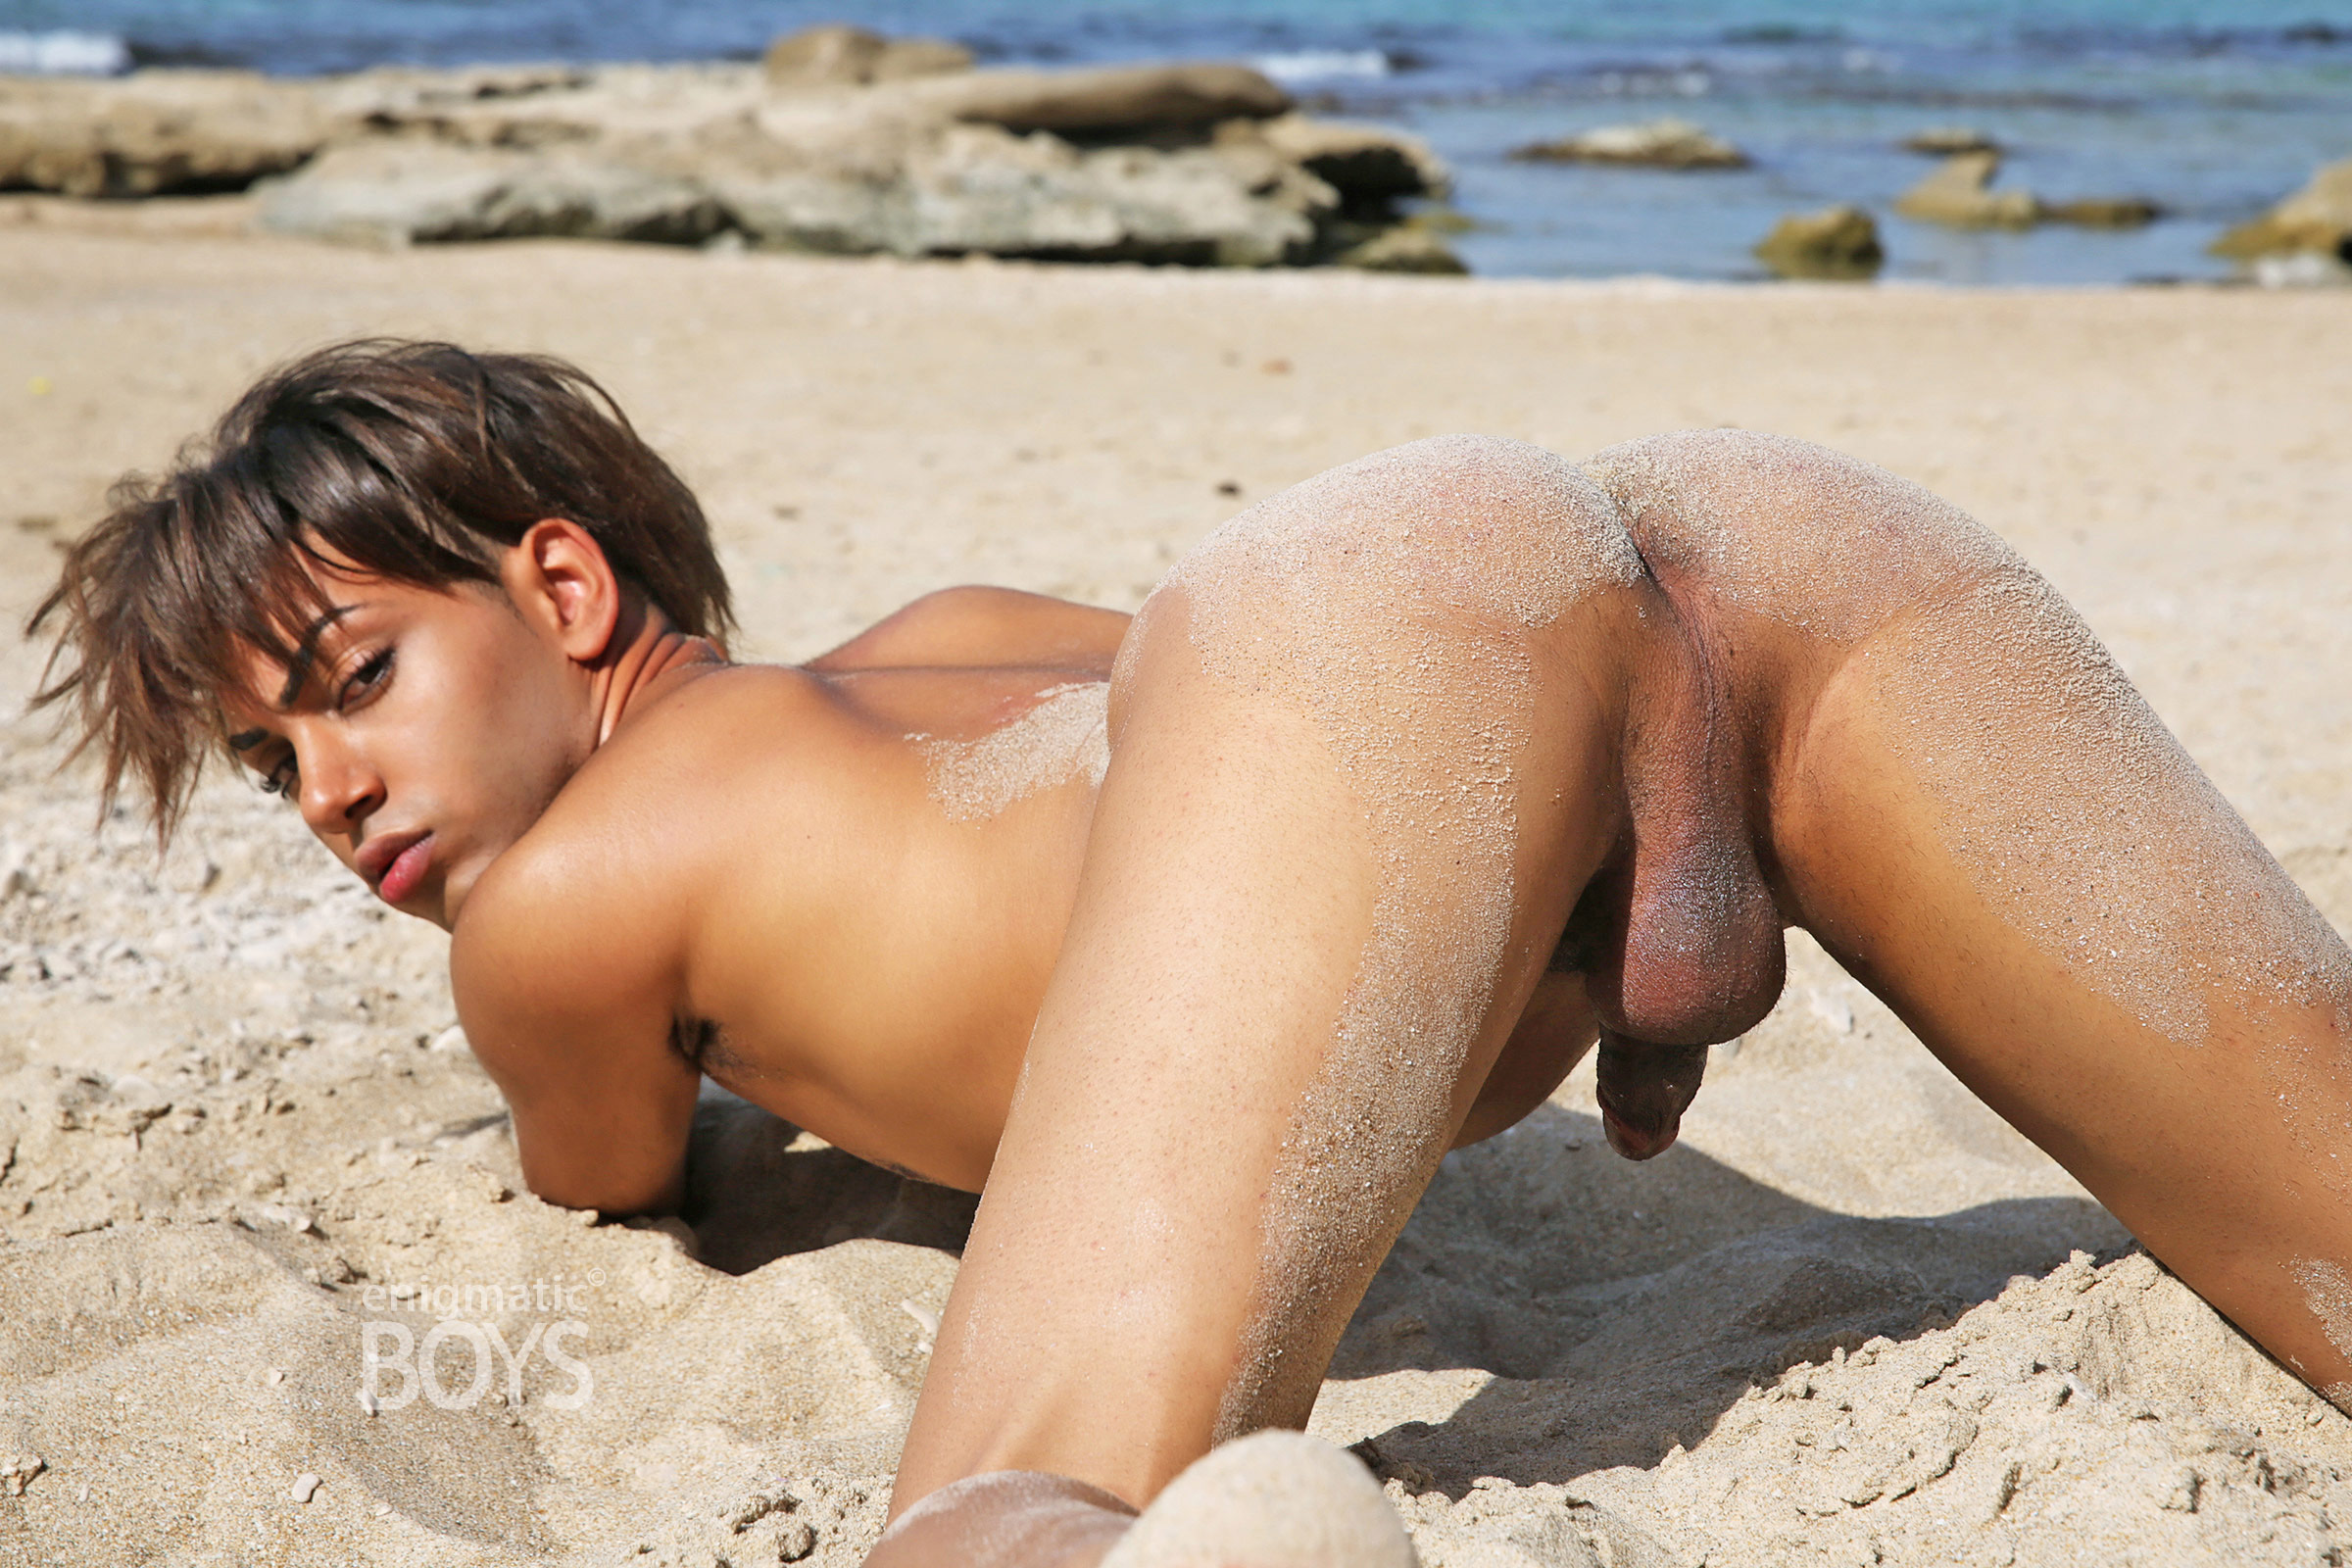 Beach Sexx boy girl beach nude sex.